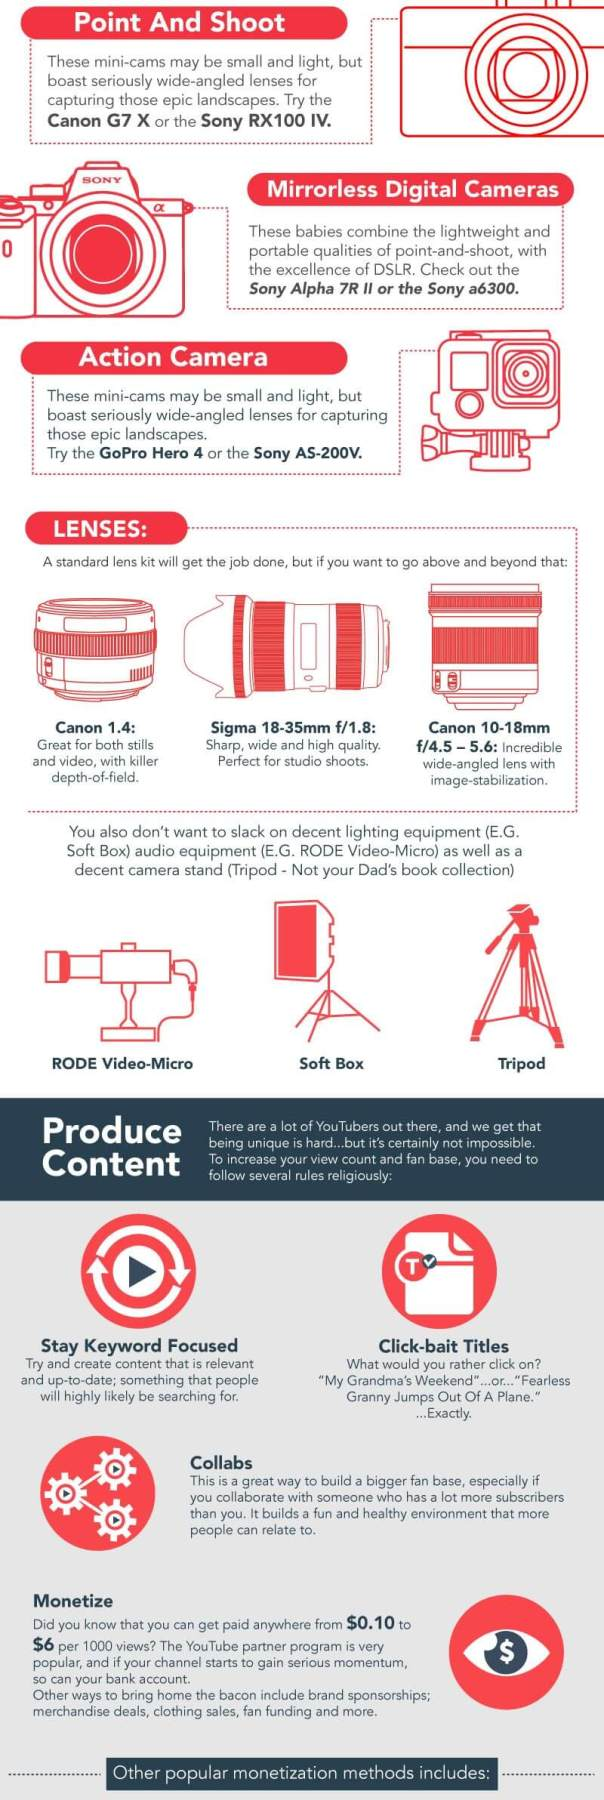 Create-a-Successful-YouTube-Channel-Infographic_03